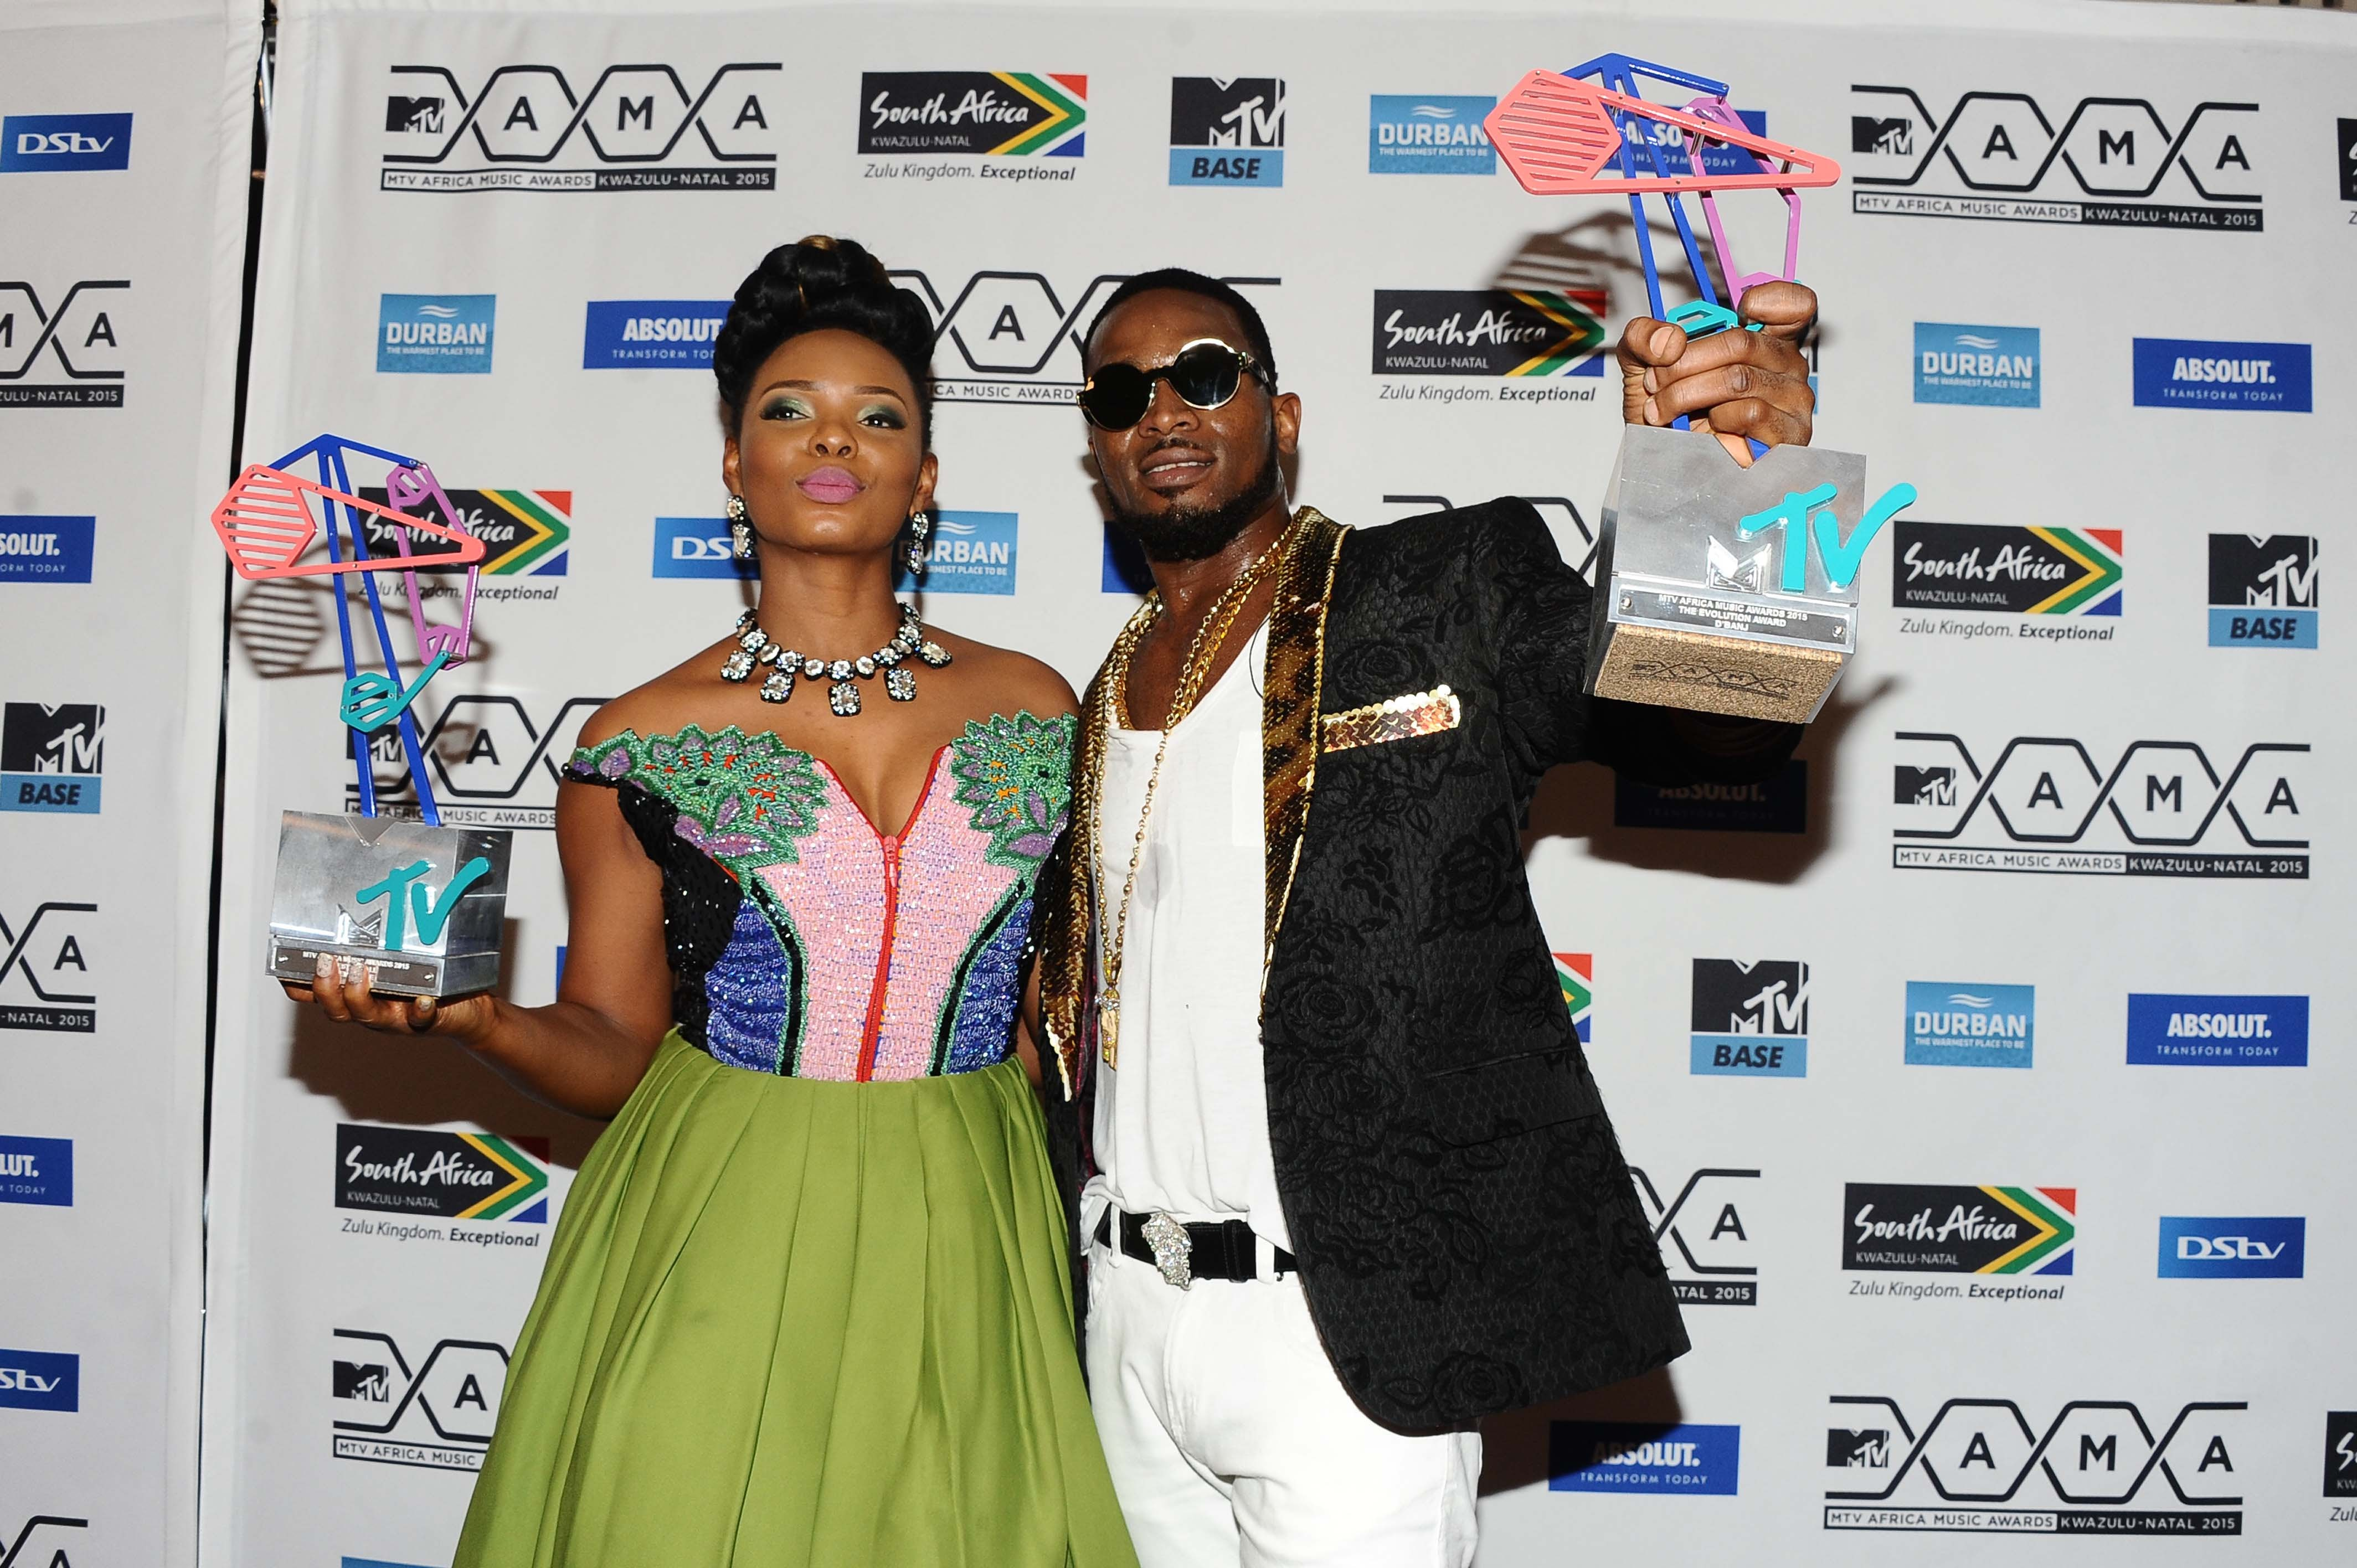 Yemi Alade and D'Banj with their awards at the MTV Africa Music Awards 2015   Source: Getty